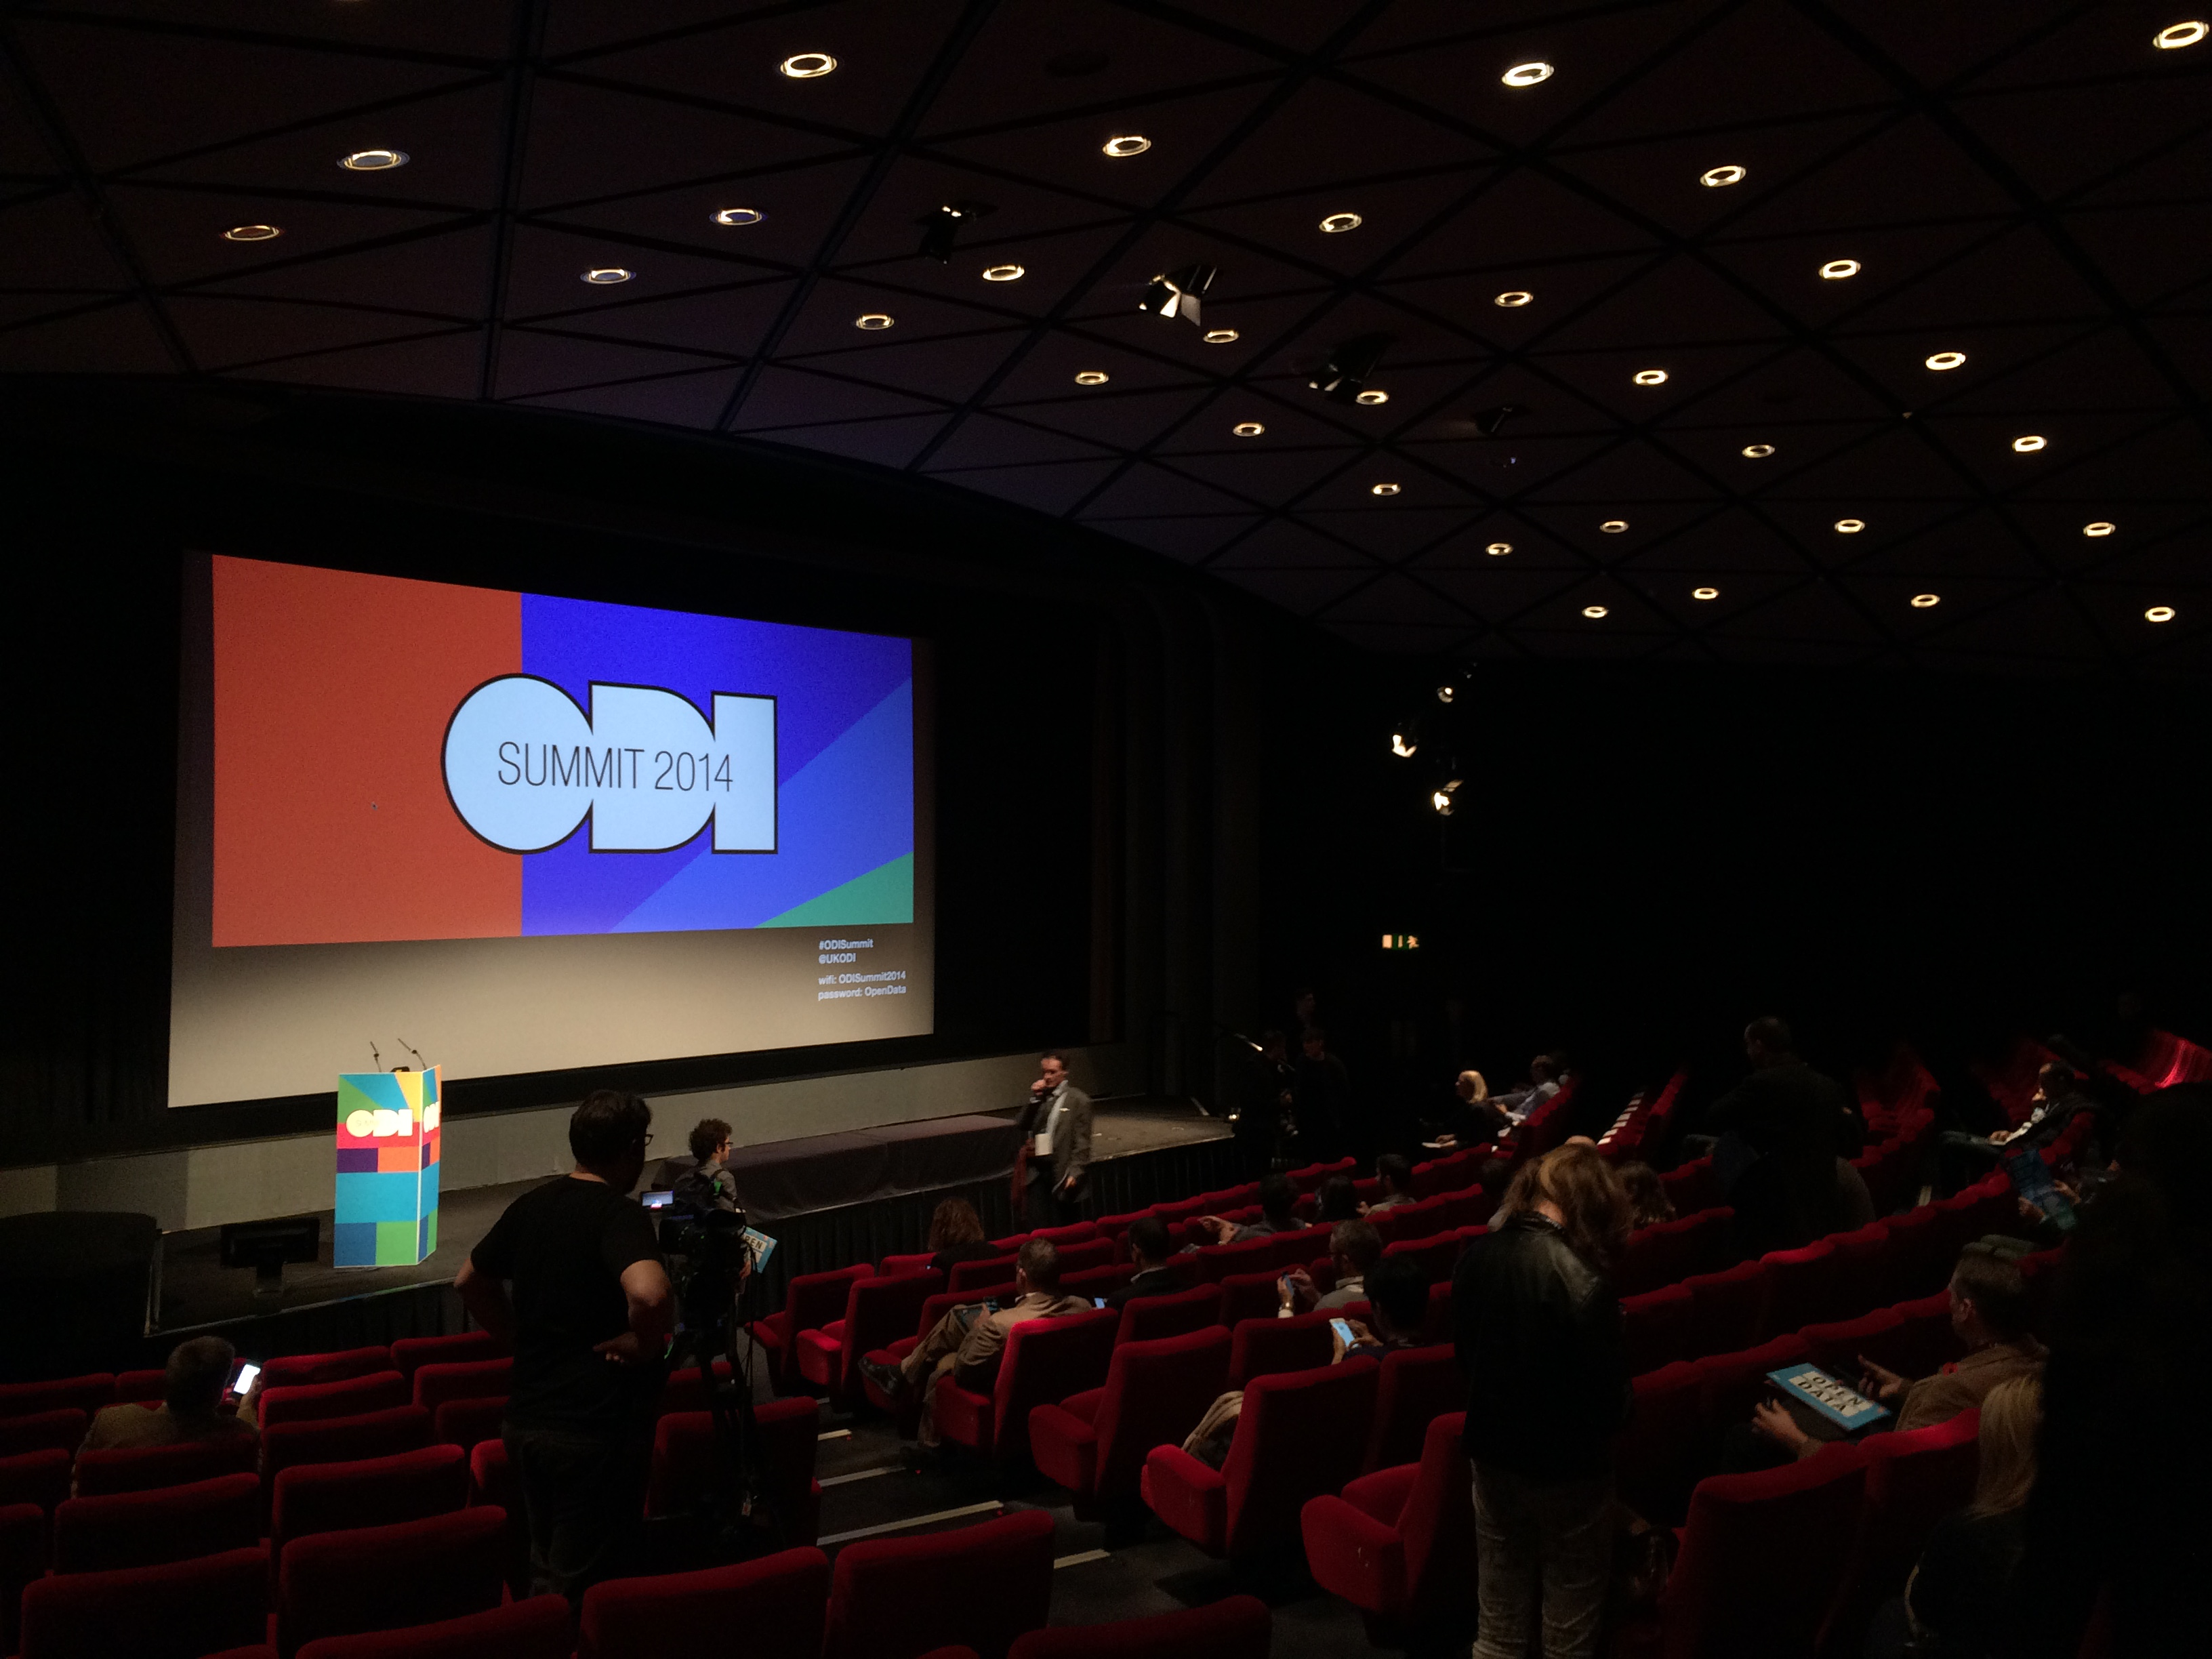 Refelcting on the #ODISummit